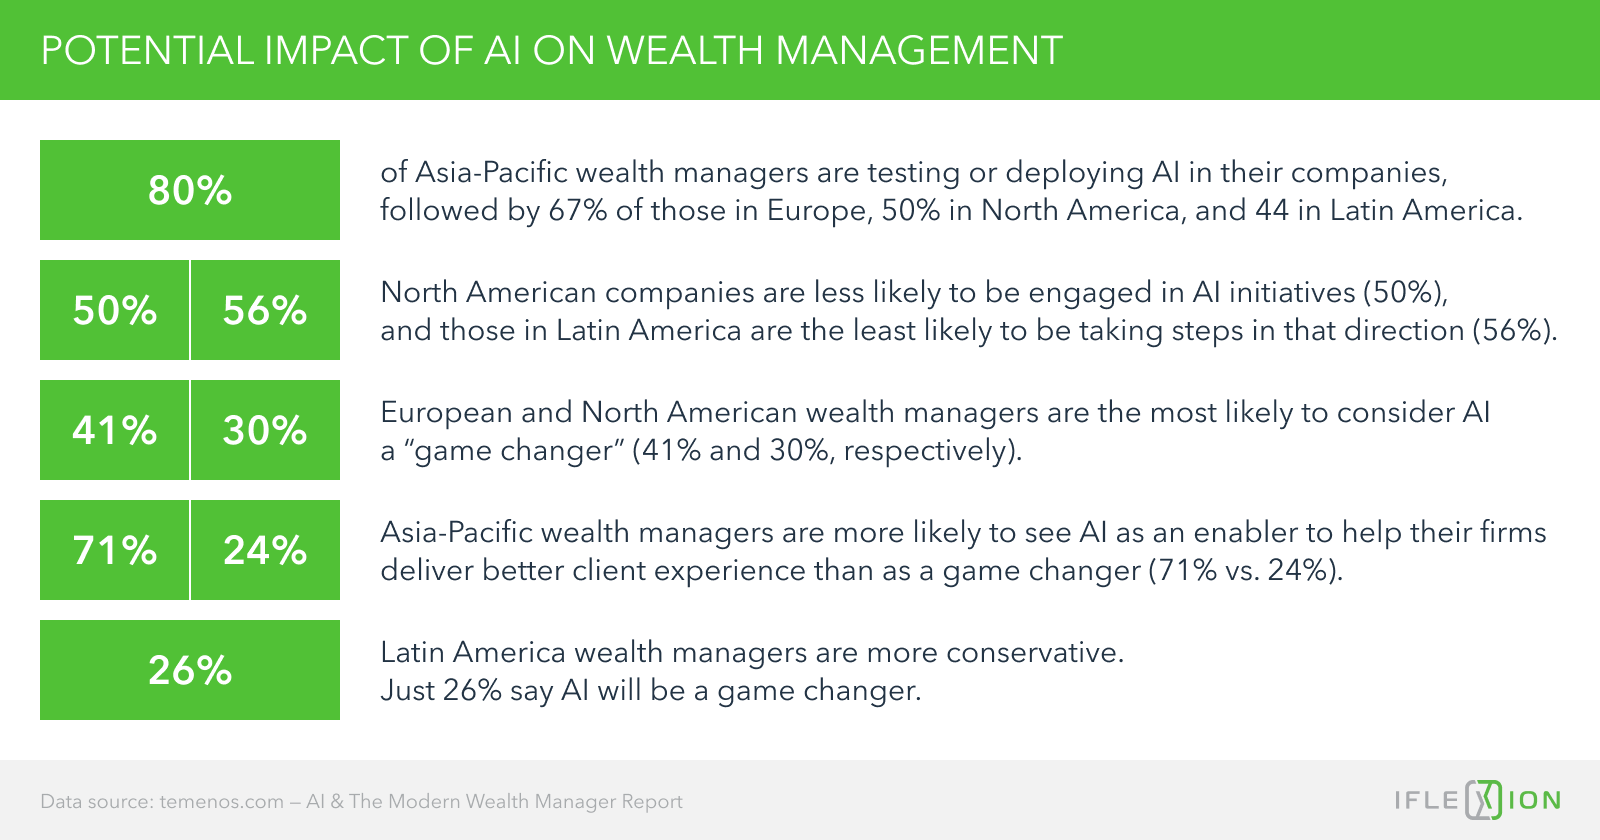 The Potential Impact of AI on Wealth Management: A Global Perspective